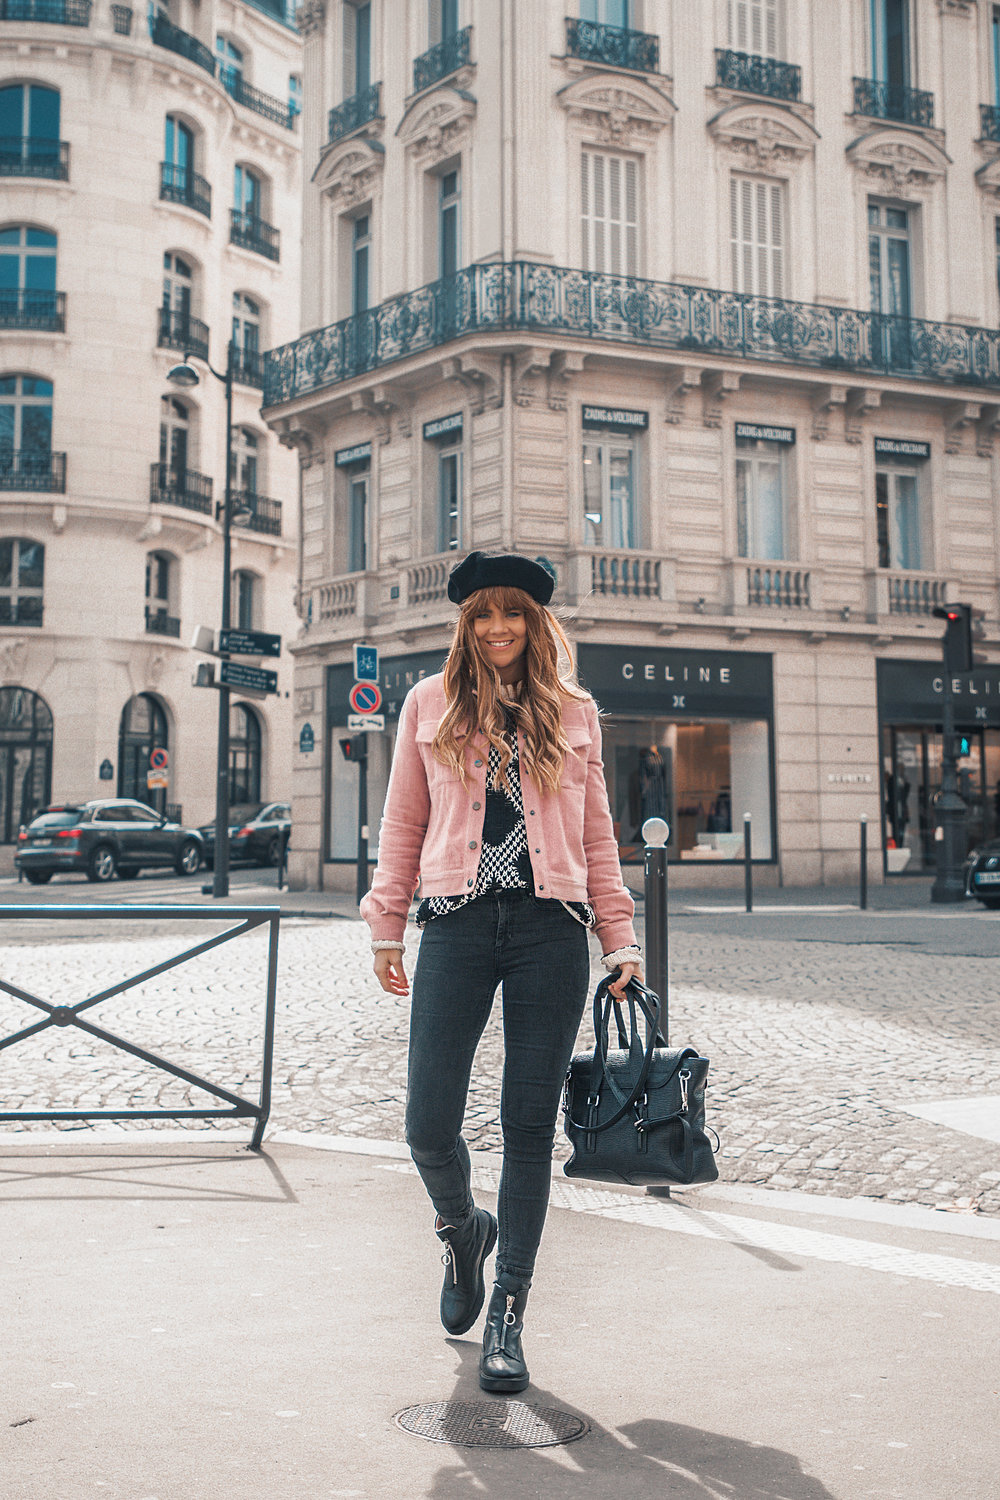 paris-winter-street-style-pink-jacket_4.jpg